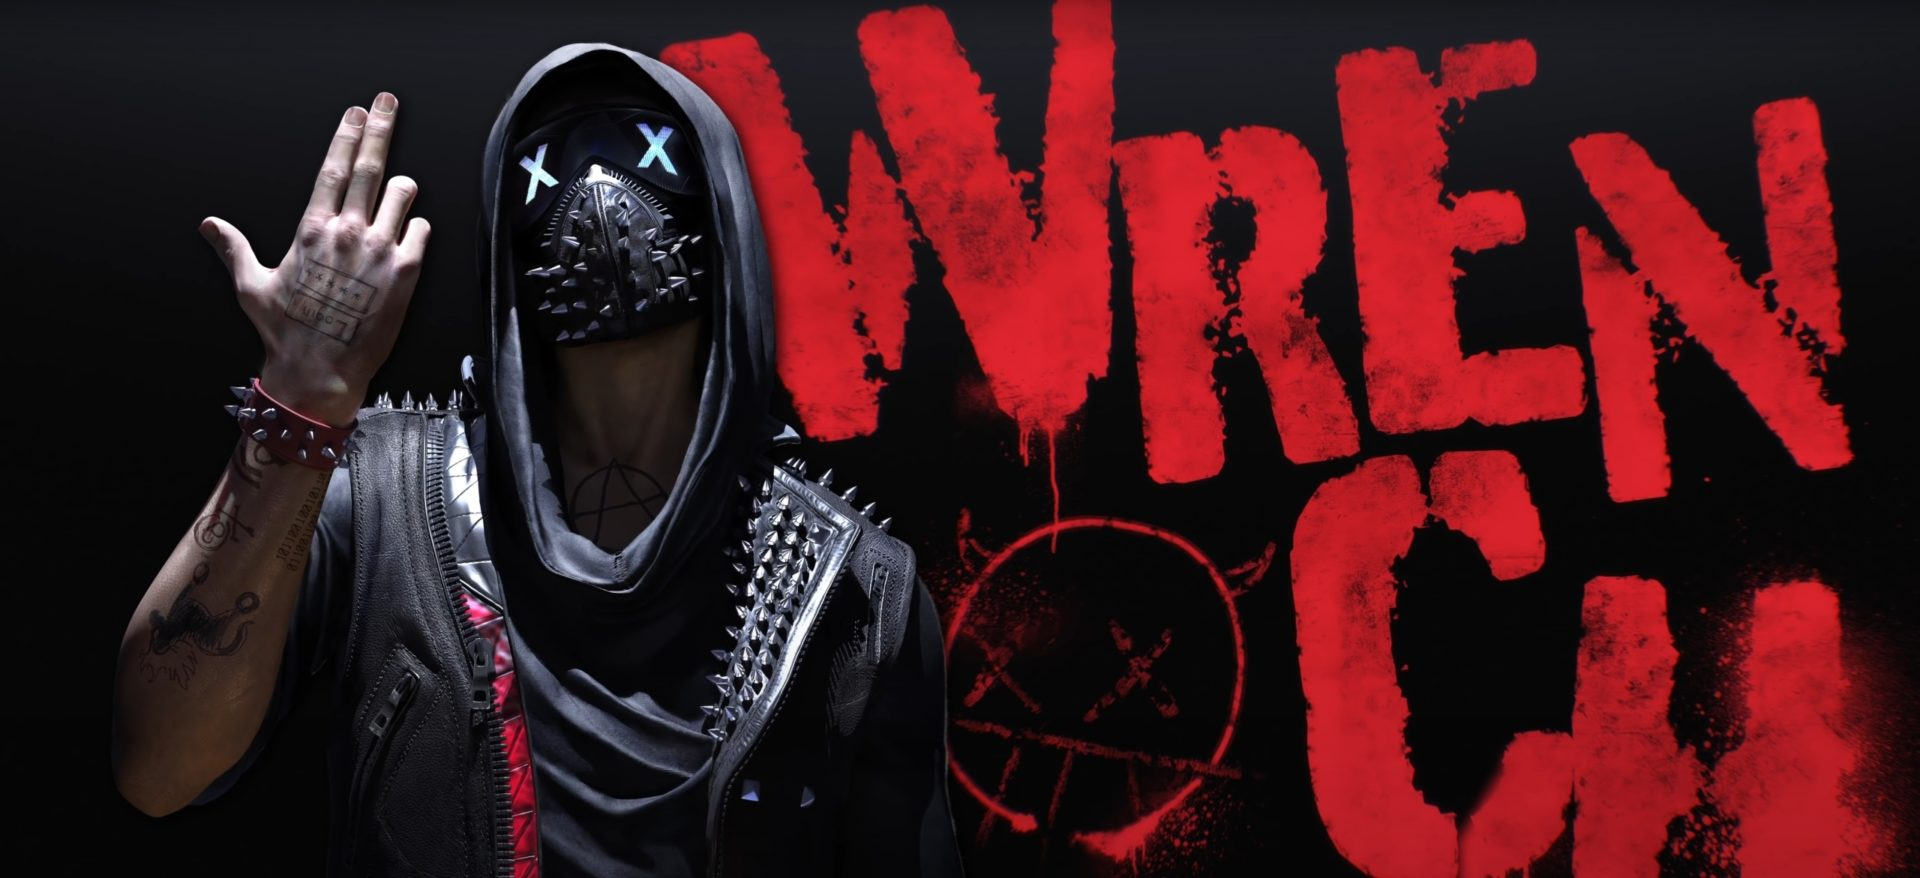 Image of the Watch Dogs character, Wrench, posing alongside his name graffitied on a black background